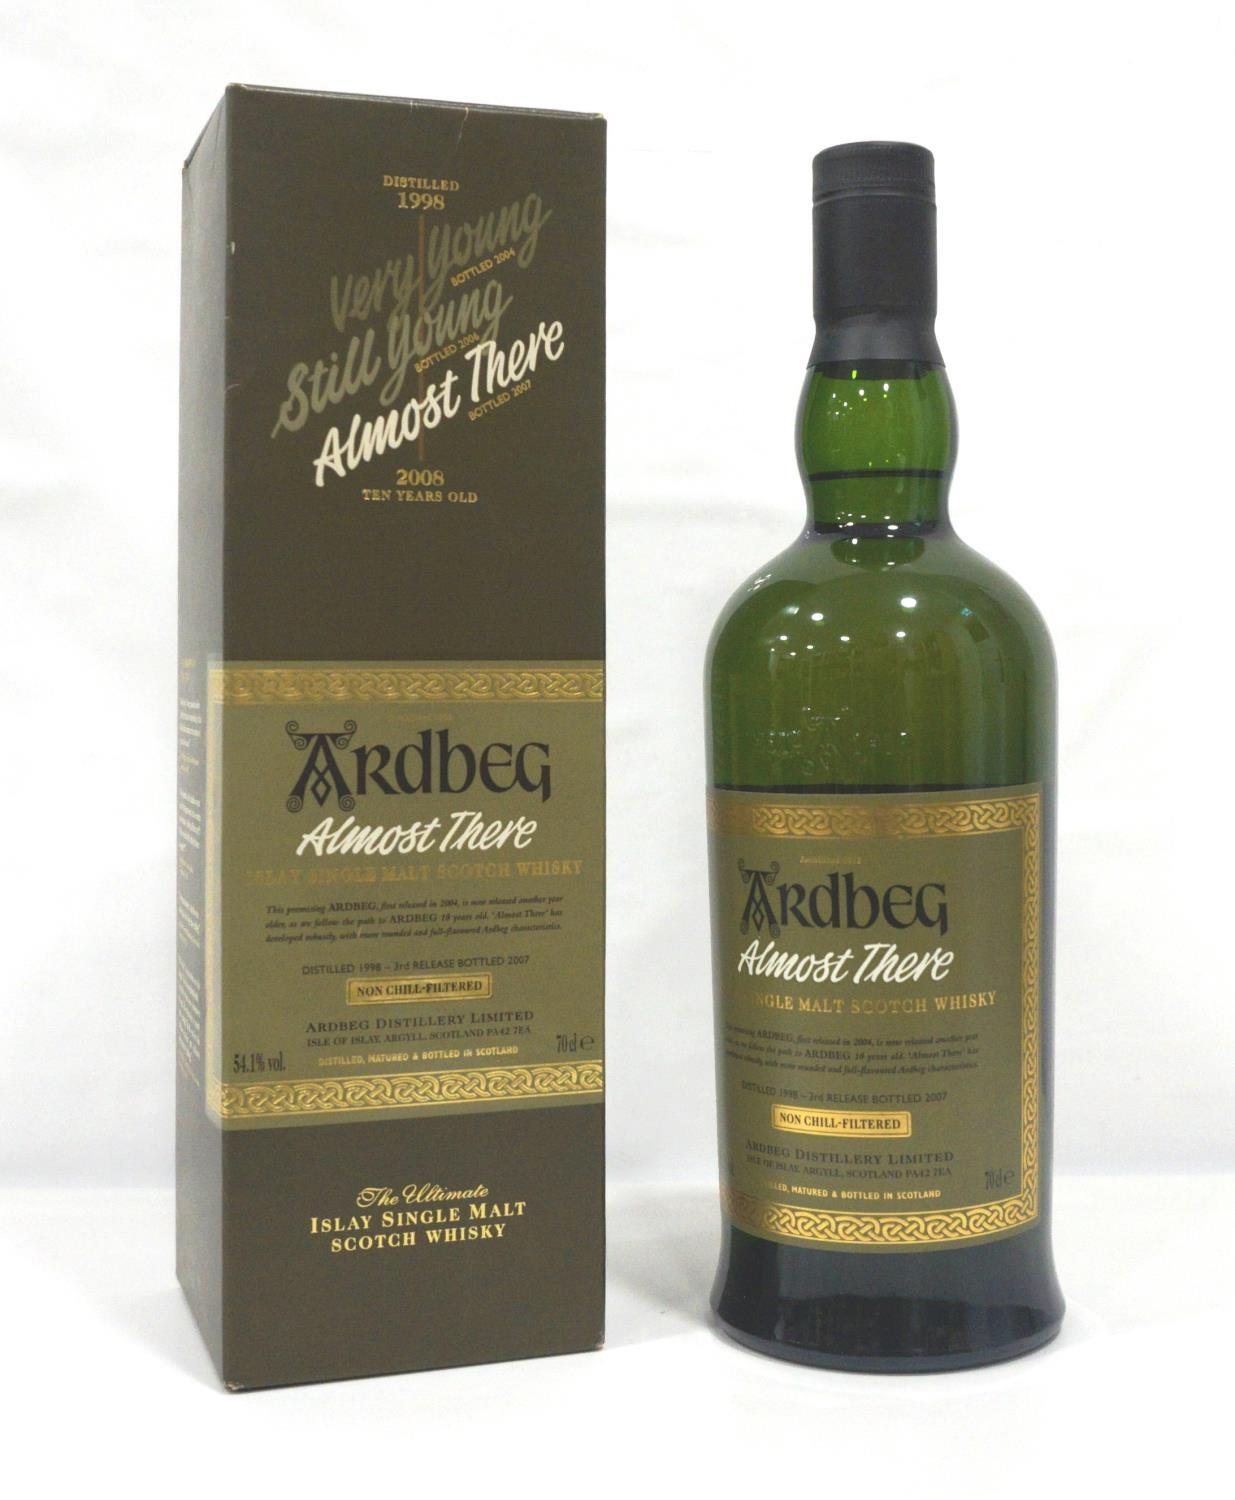 Lot 20 - ARDBEG ALMOST THERE The third release in the series of Ardbeg released on the run up to the new 10